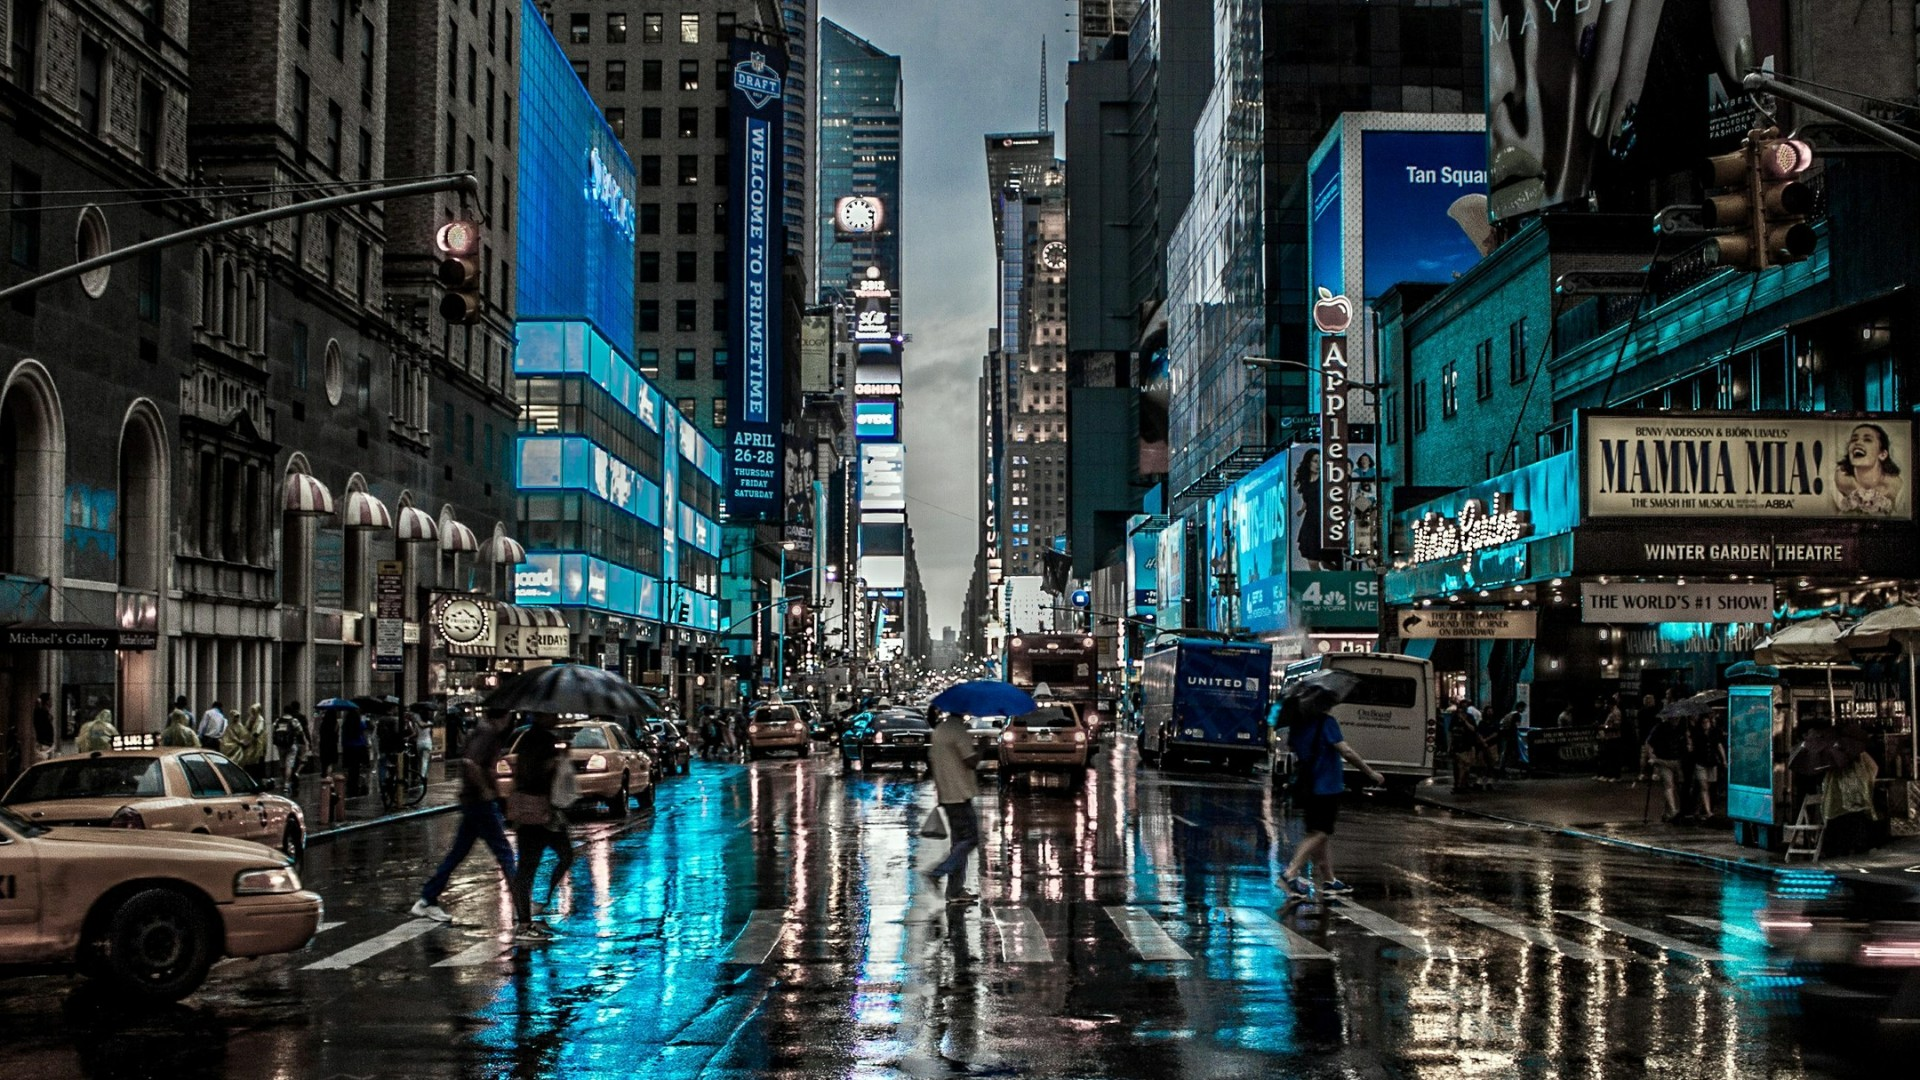 Rainy day in New York City wallpaper - backiee